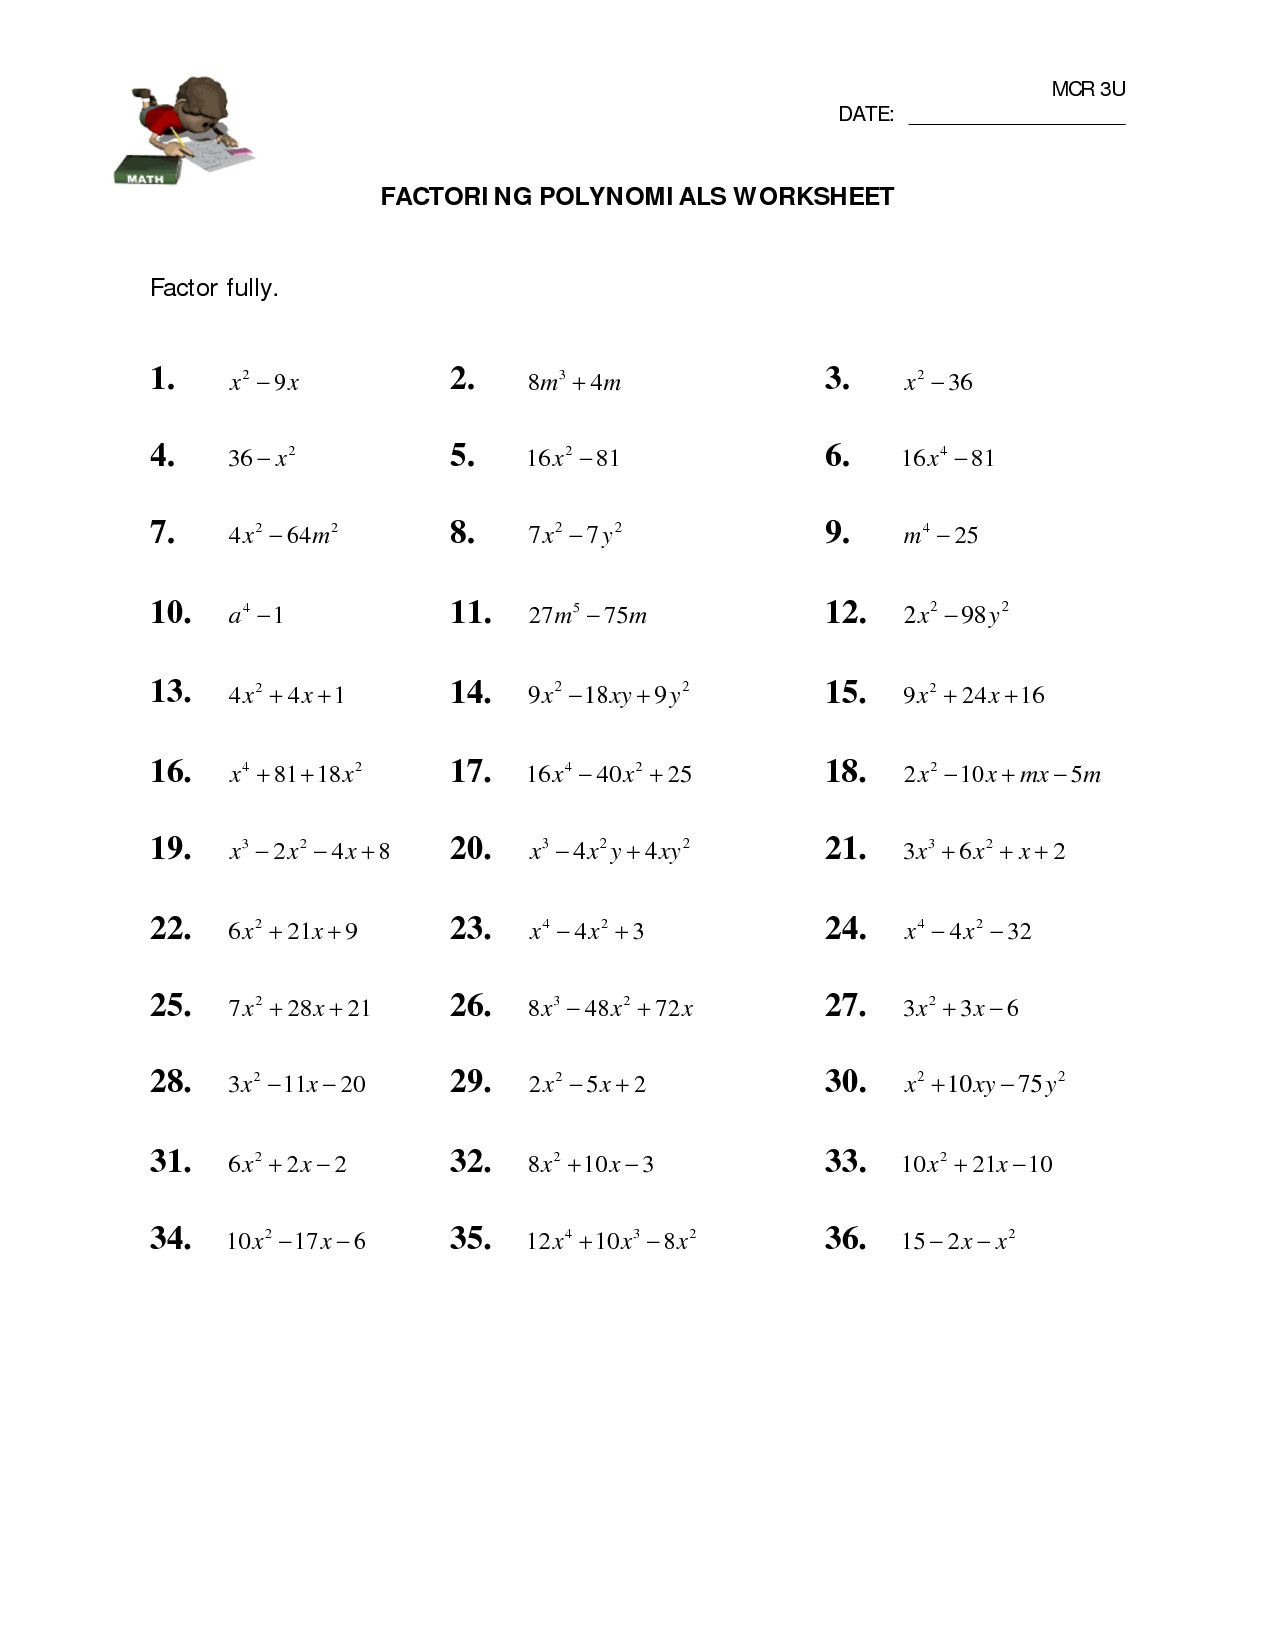 5 Factoring Polynomials Worksheet With Answers Algebra 1